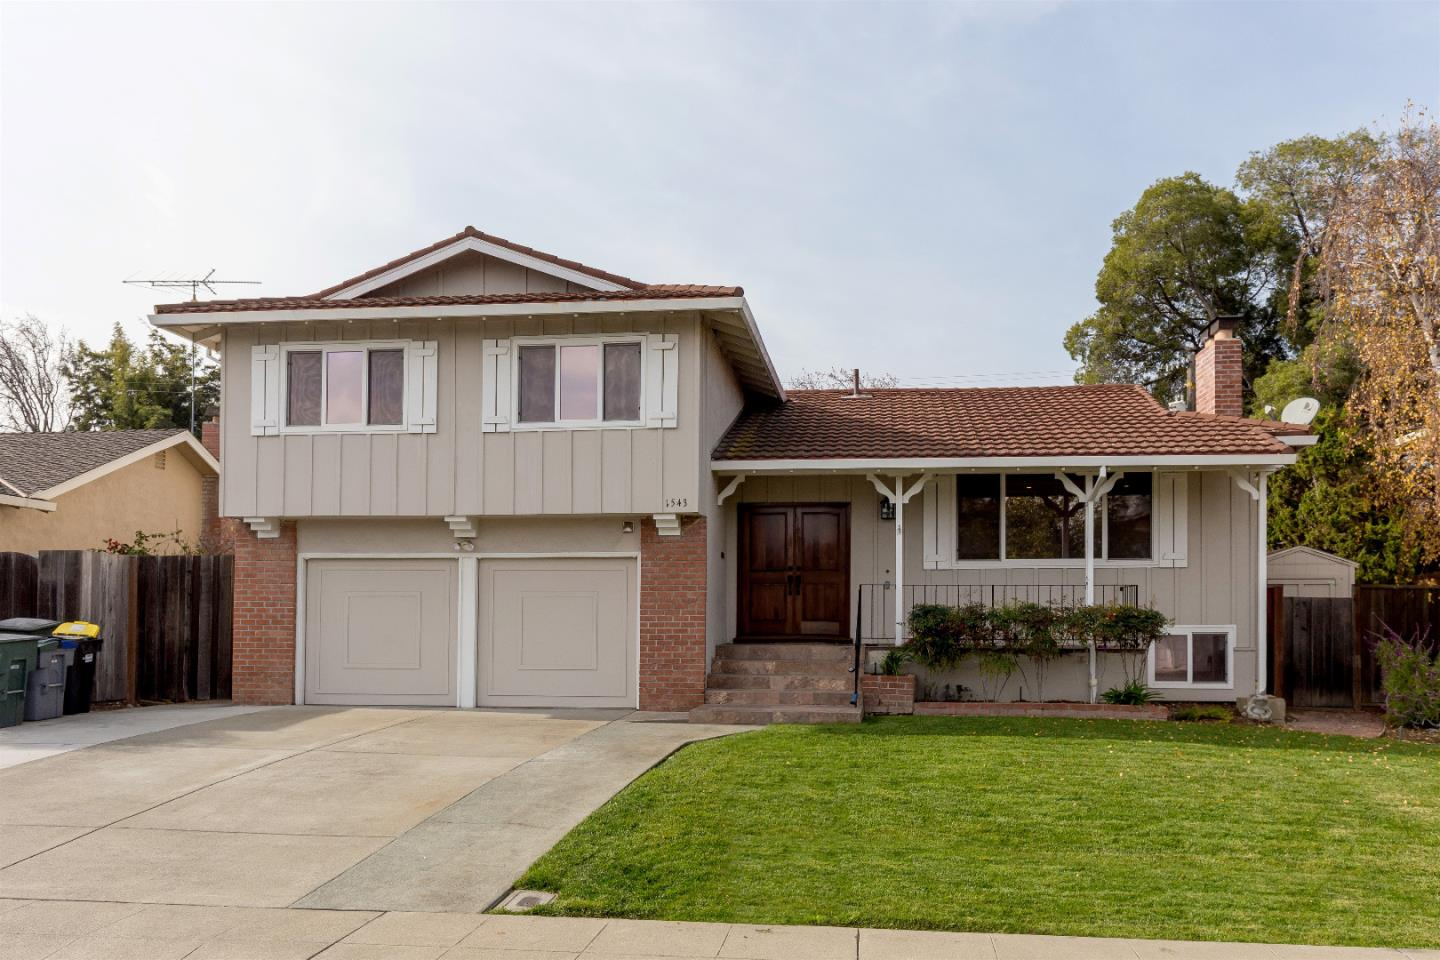 Single Family Home for Sale at 1543 Bittern Drive 1543 Bittern Drive Sunnyvale, California 94087 United States